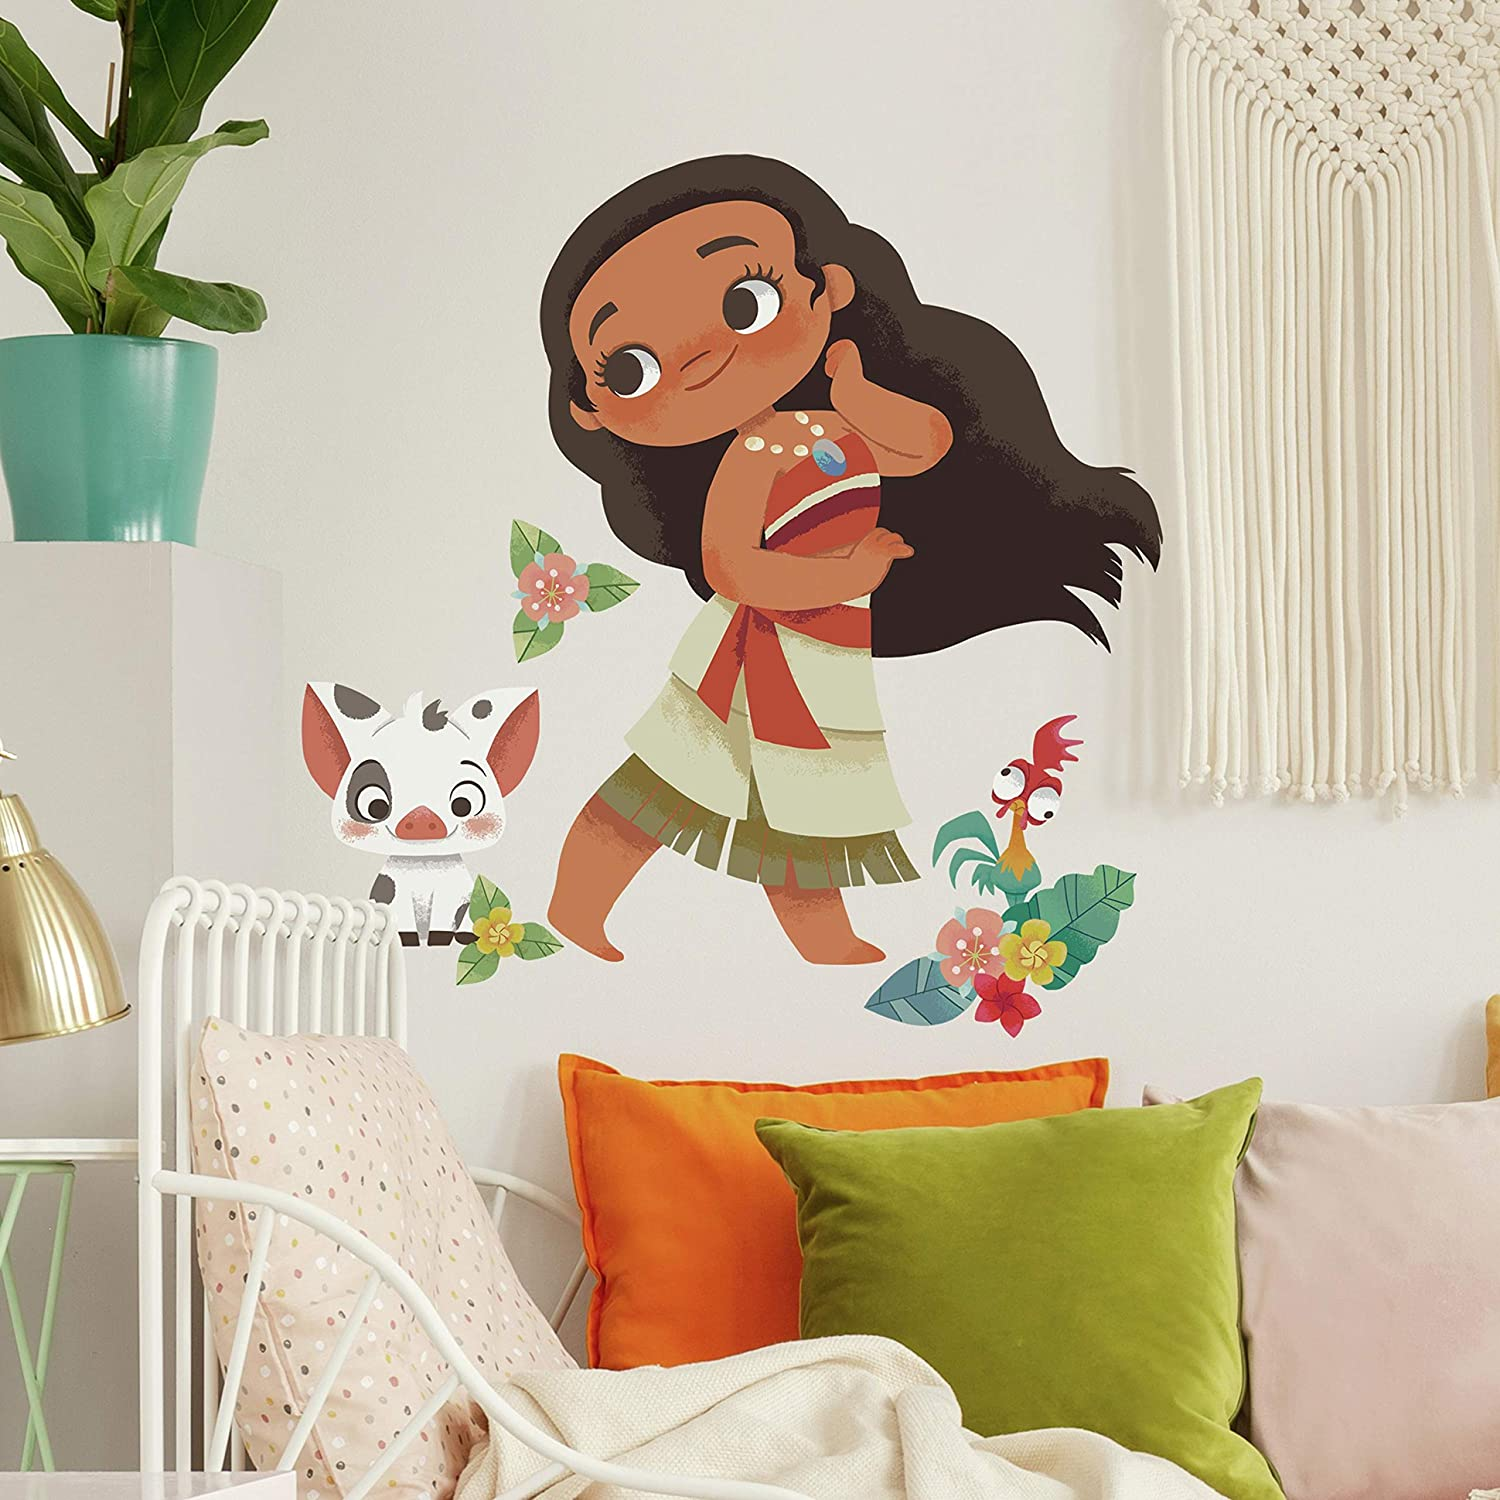 RoomMates Vintage Moana Peel and Stick Giant Wall Decals